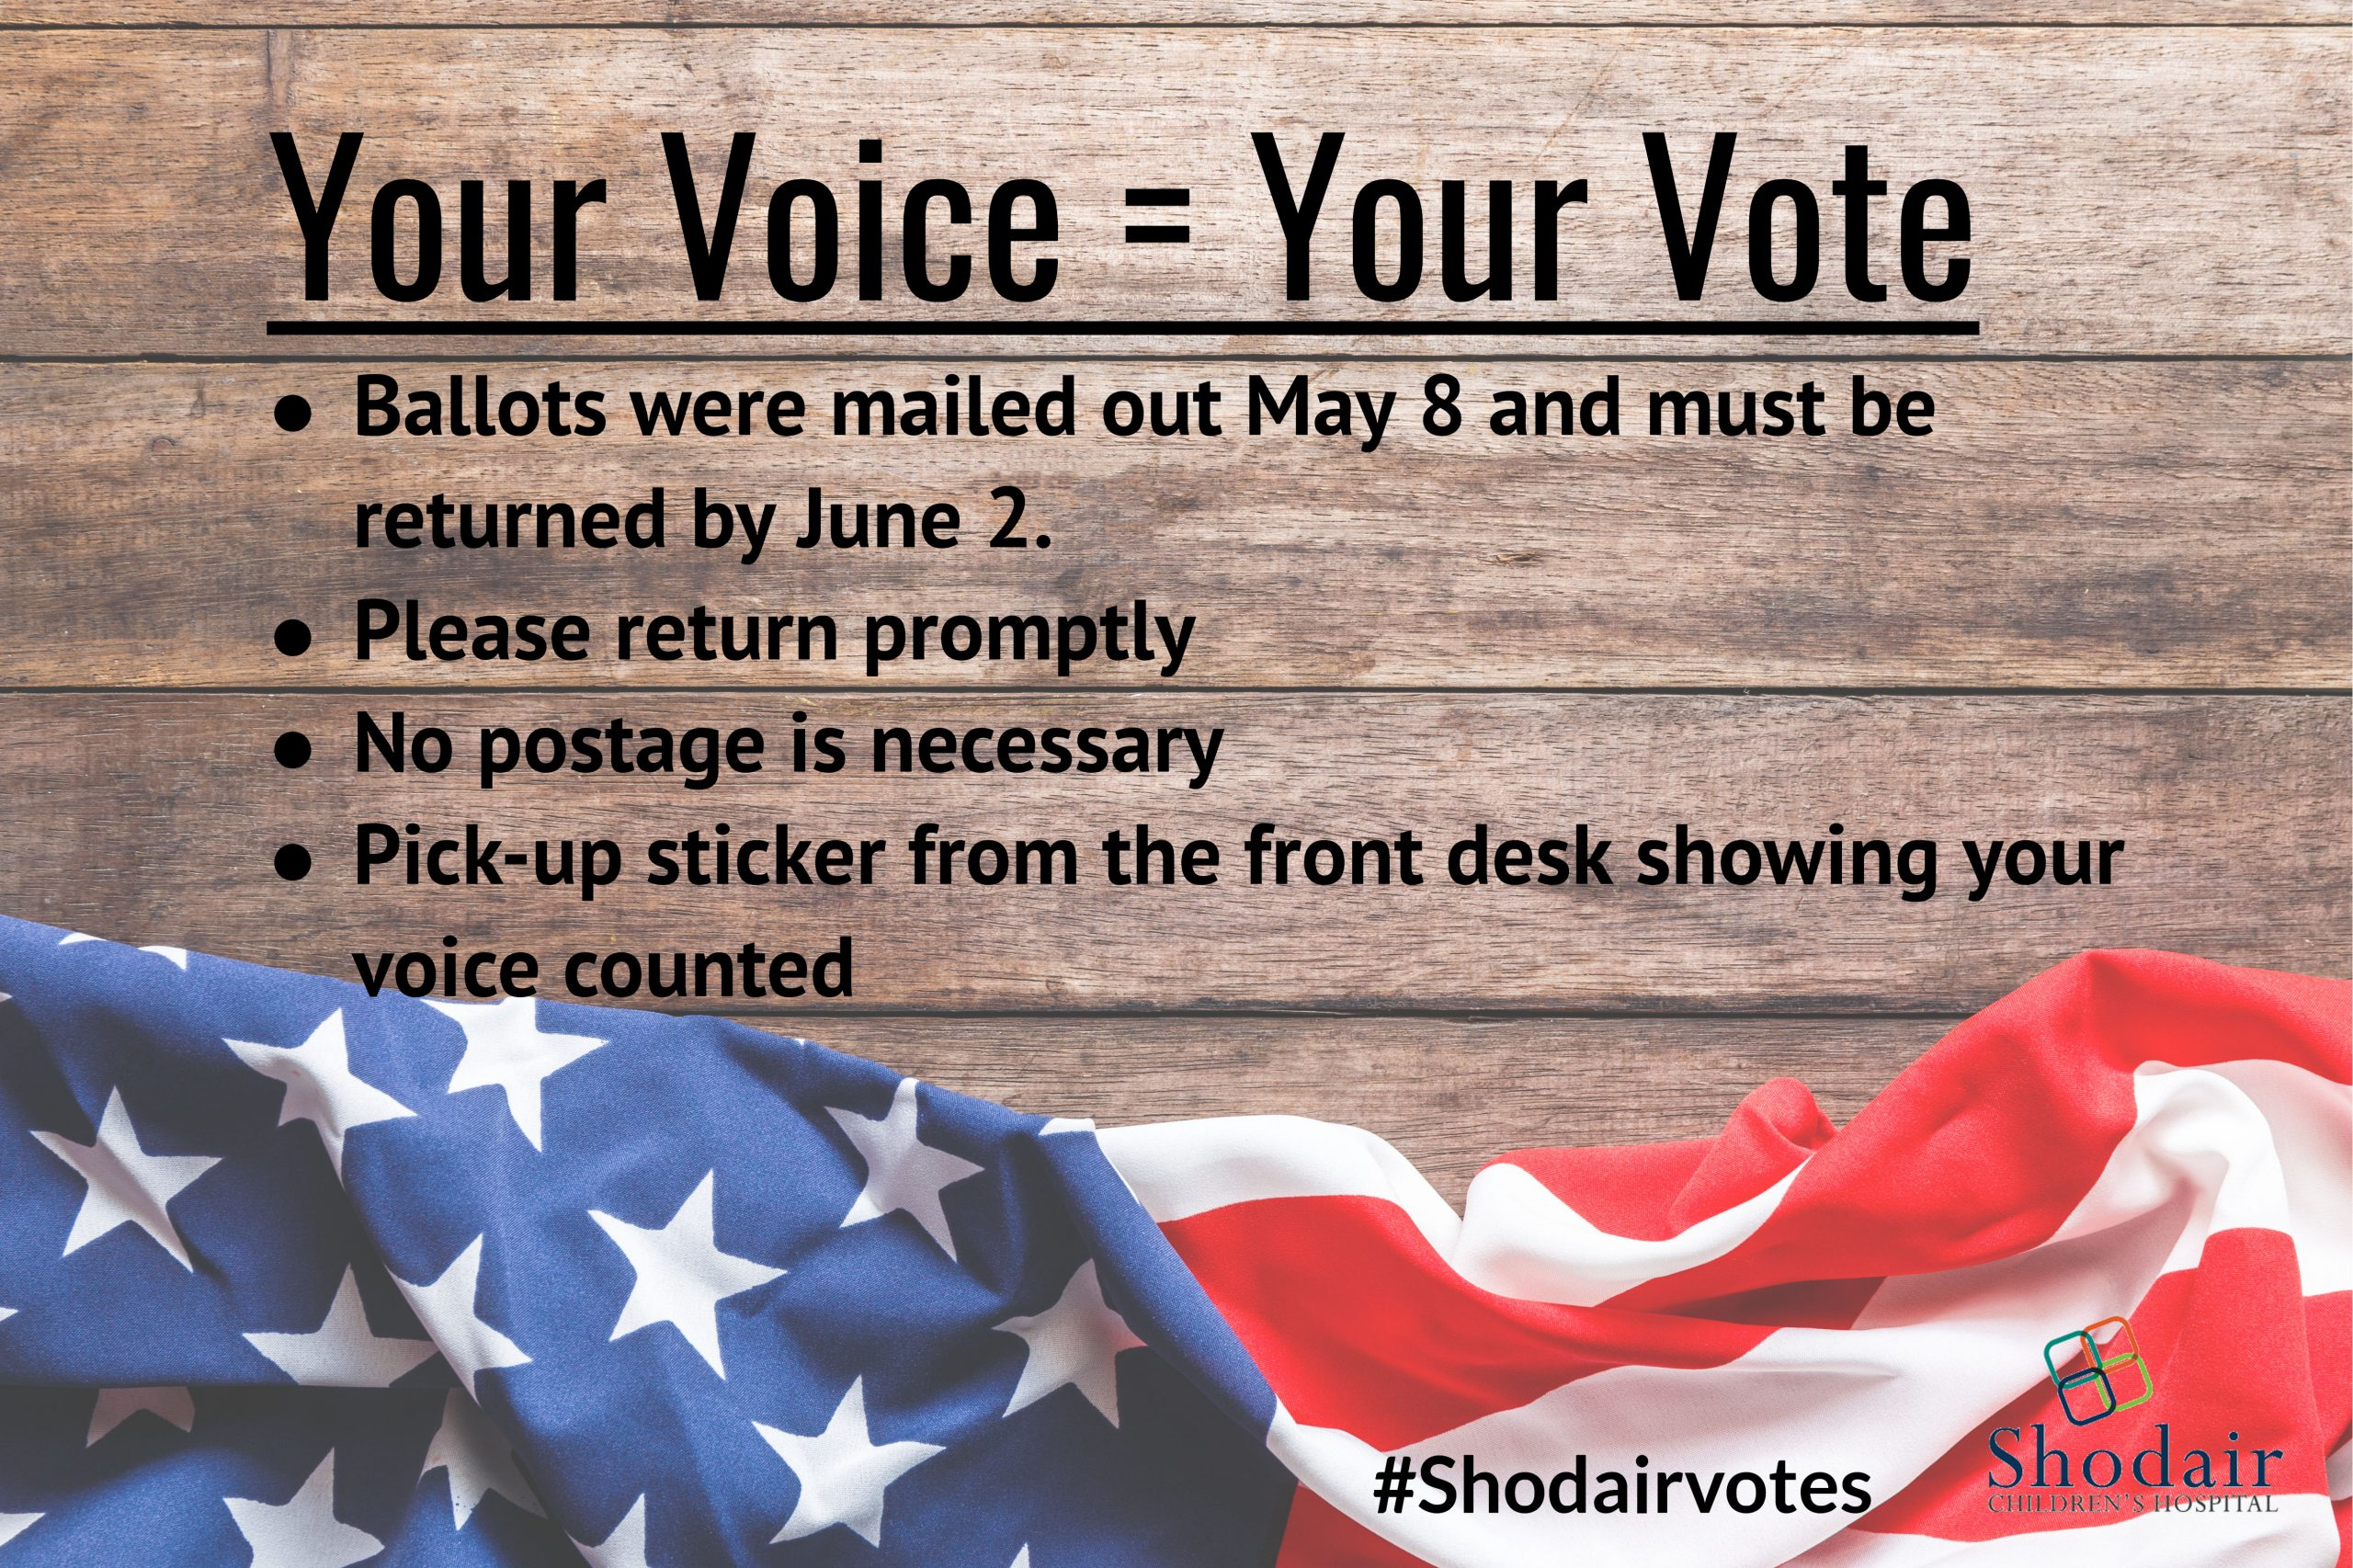 Your Voice = Your Vote